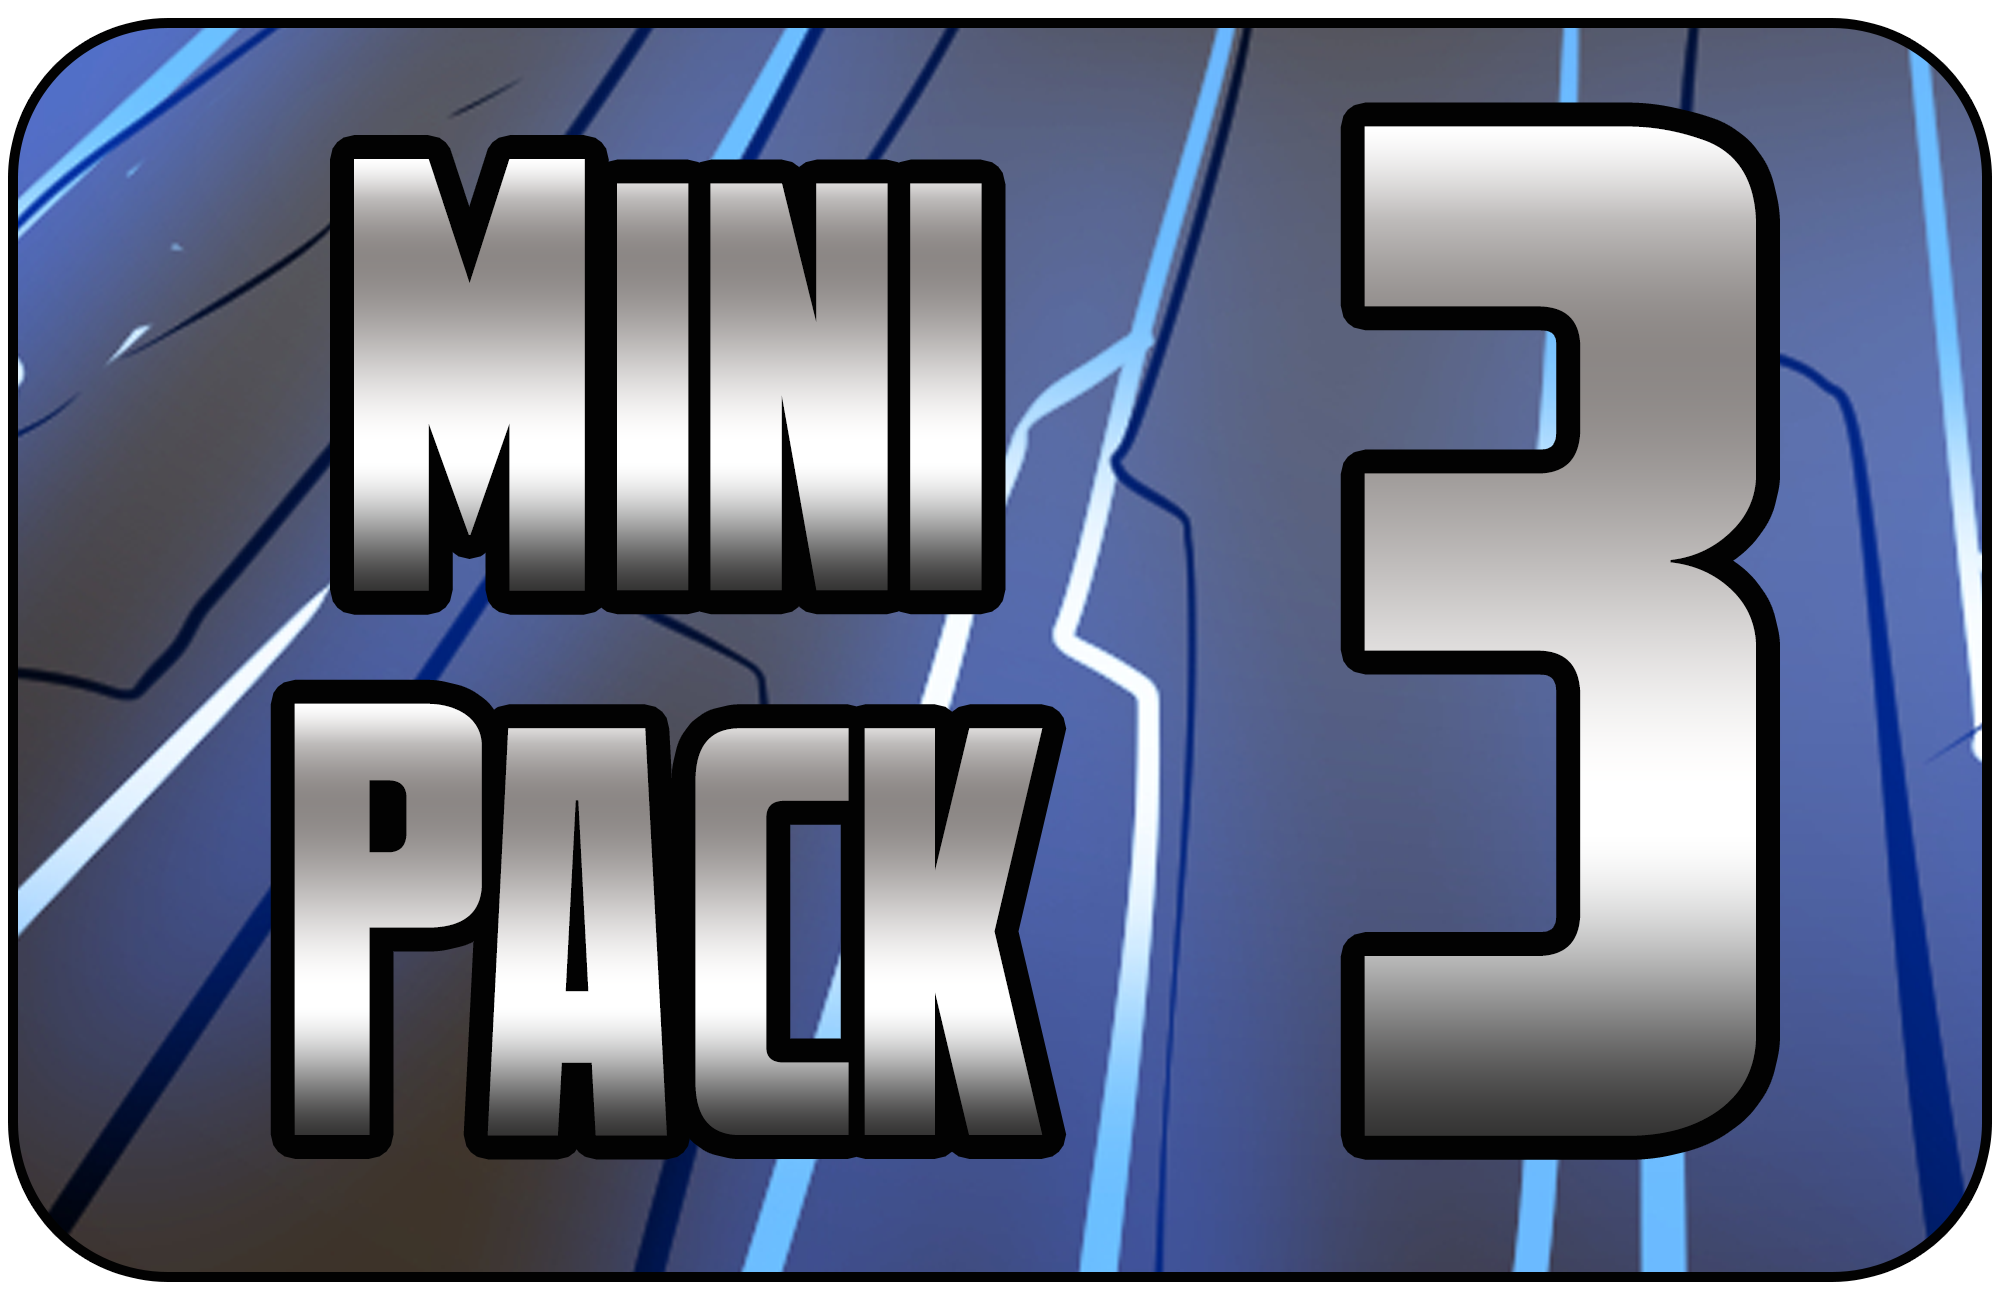 _ICON minipack3.png